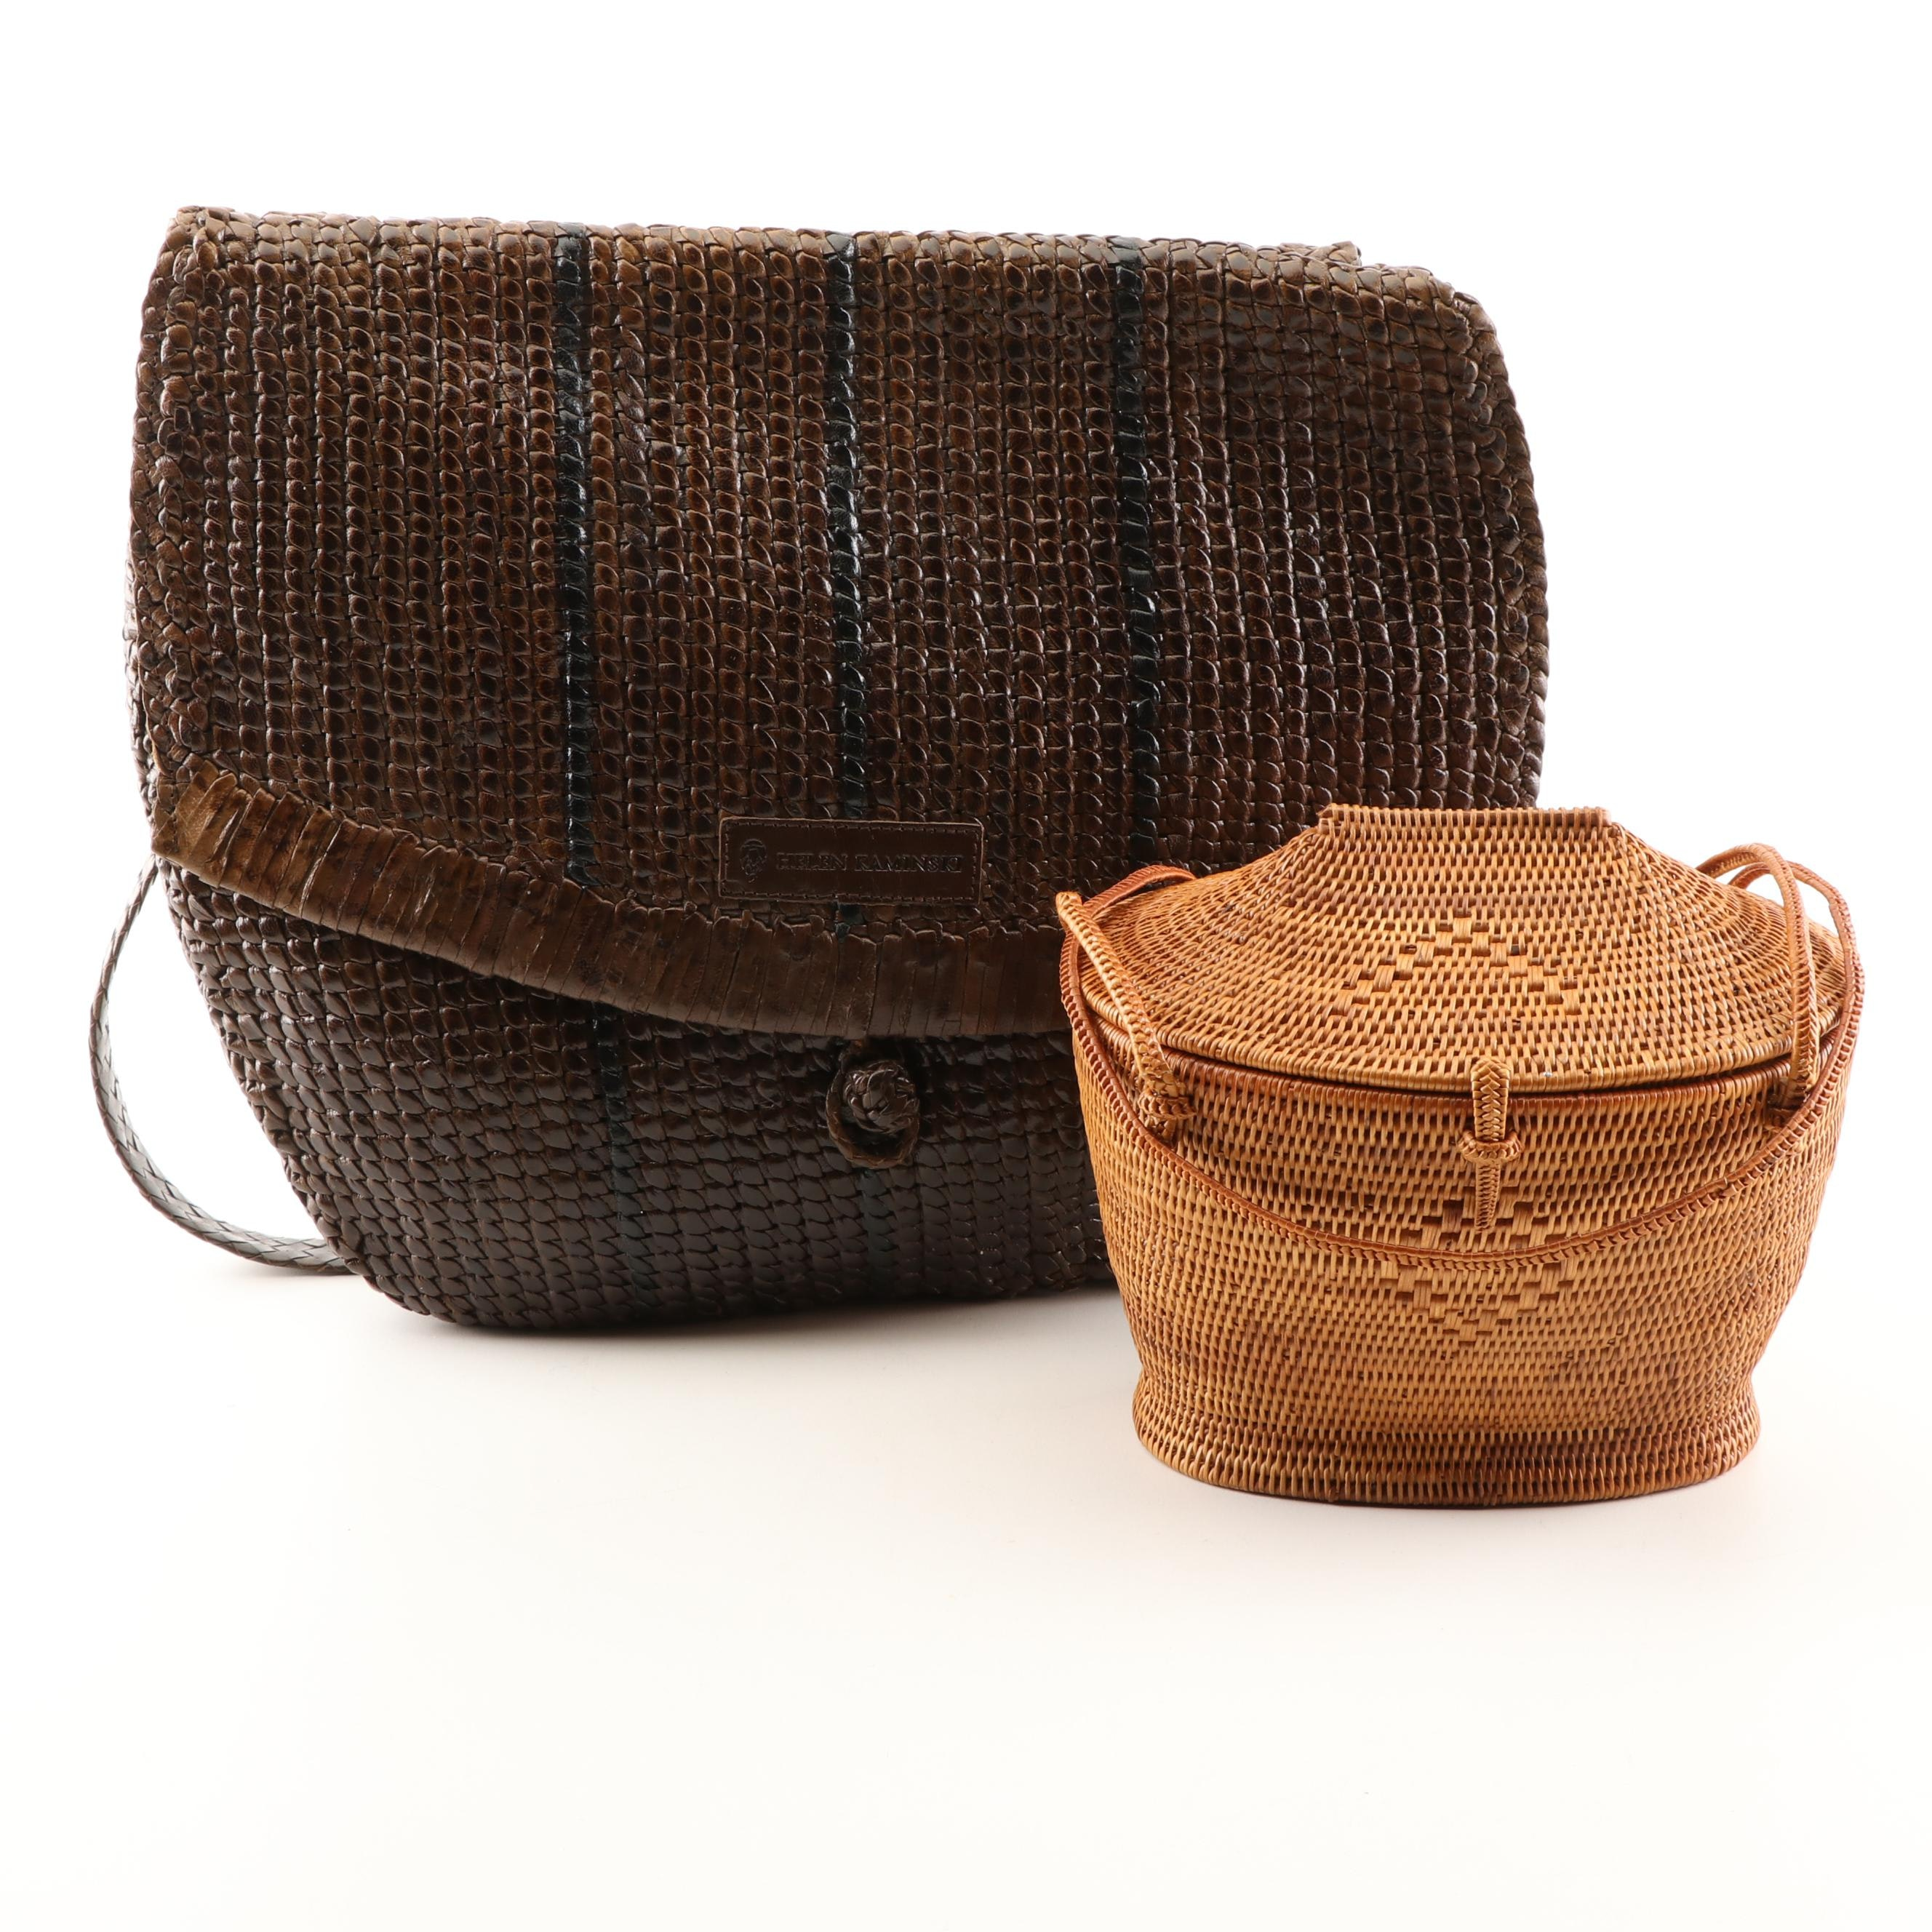 Helen Kaminski Australia Woven Brown Leather Shoulder Bag and a Rattan Box Purse